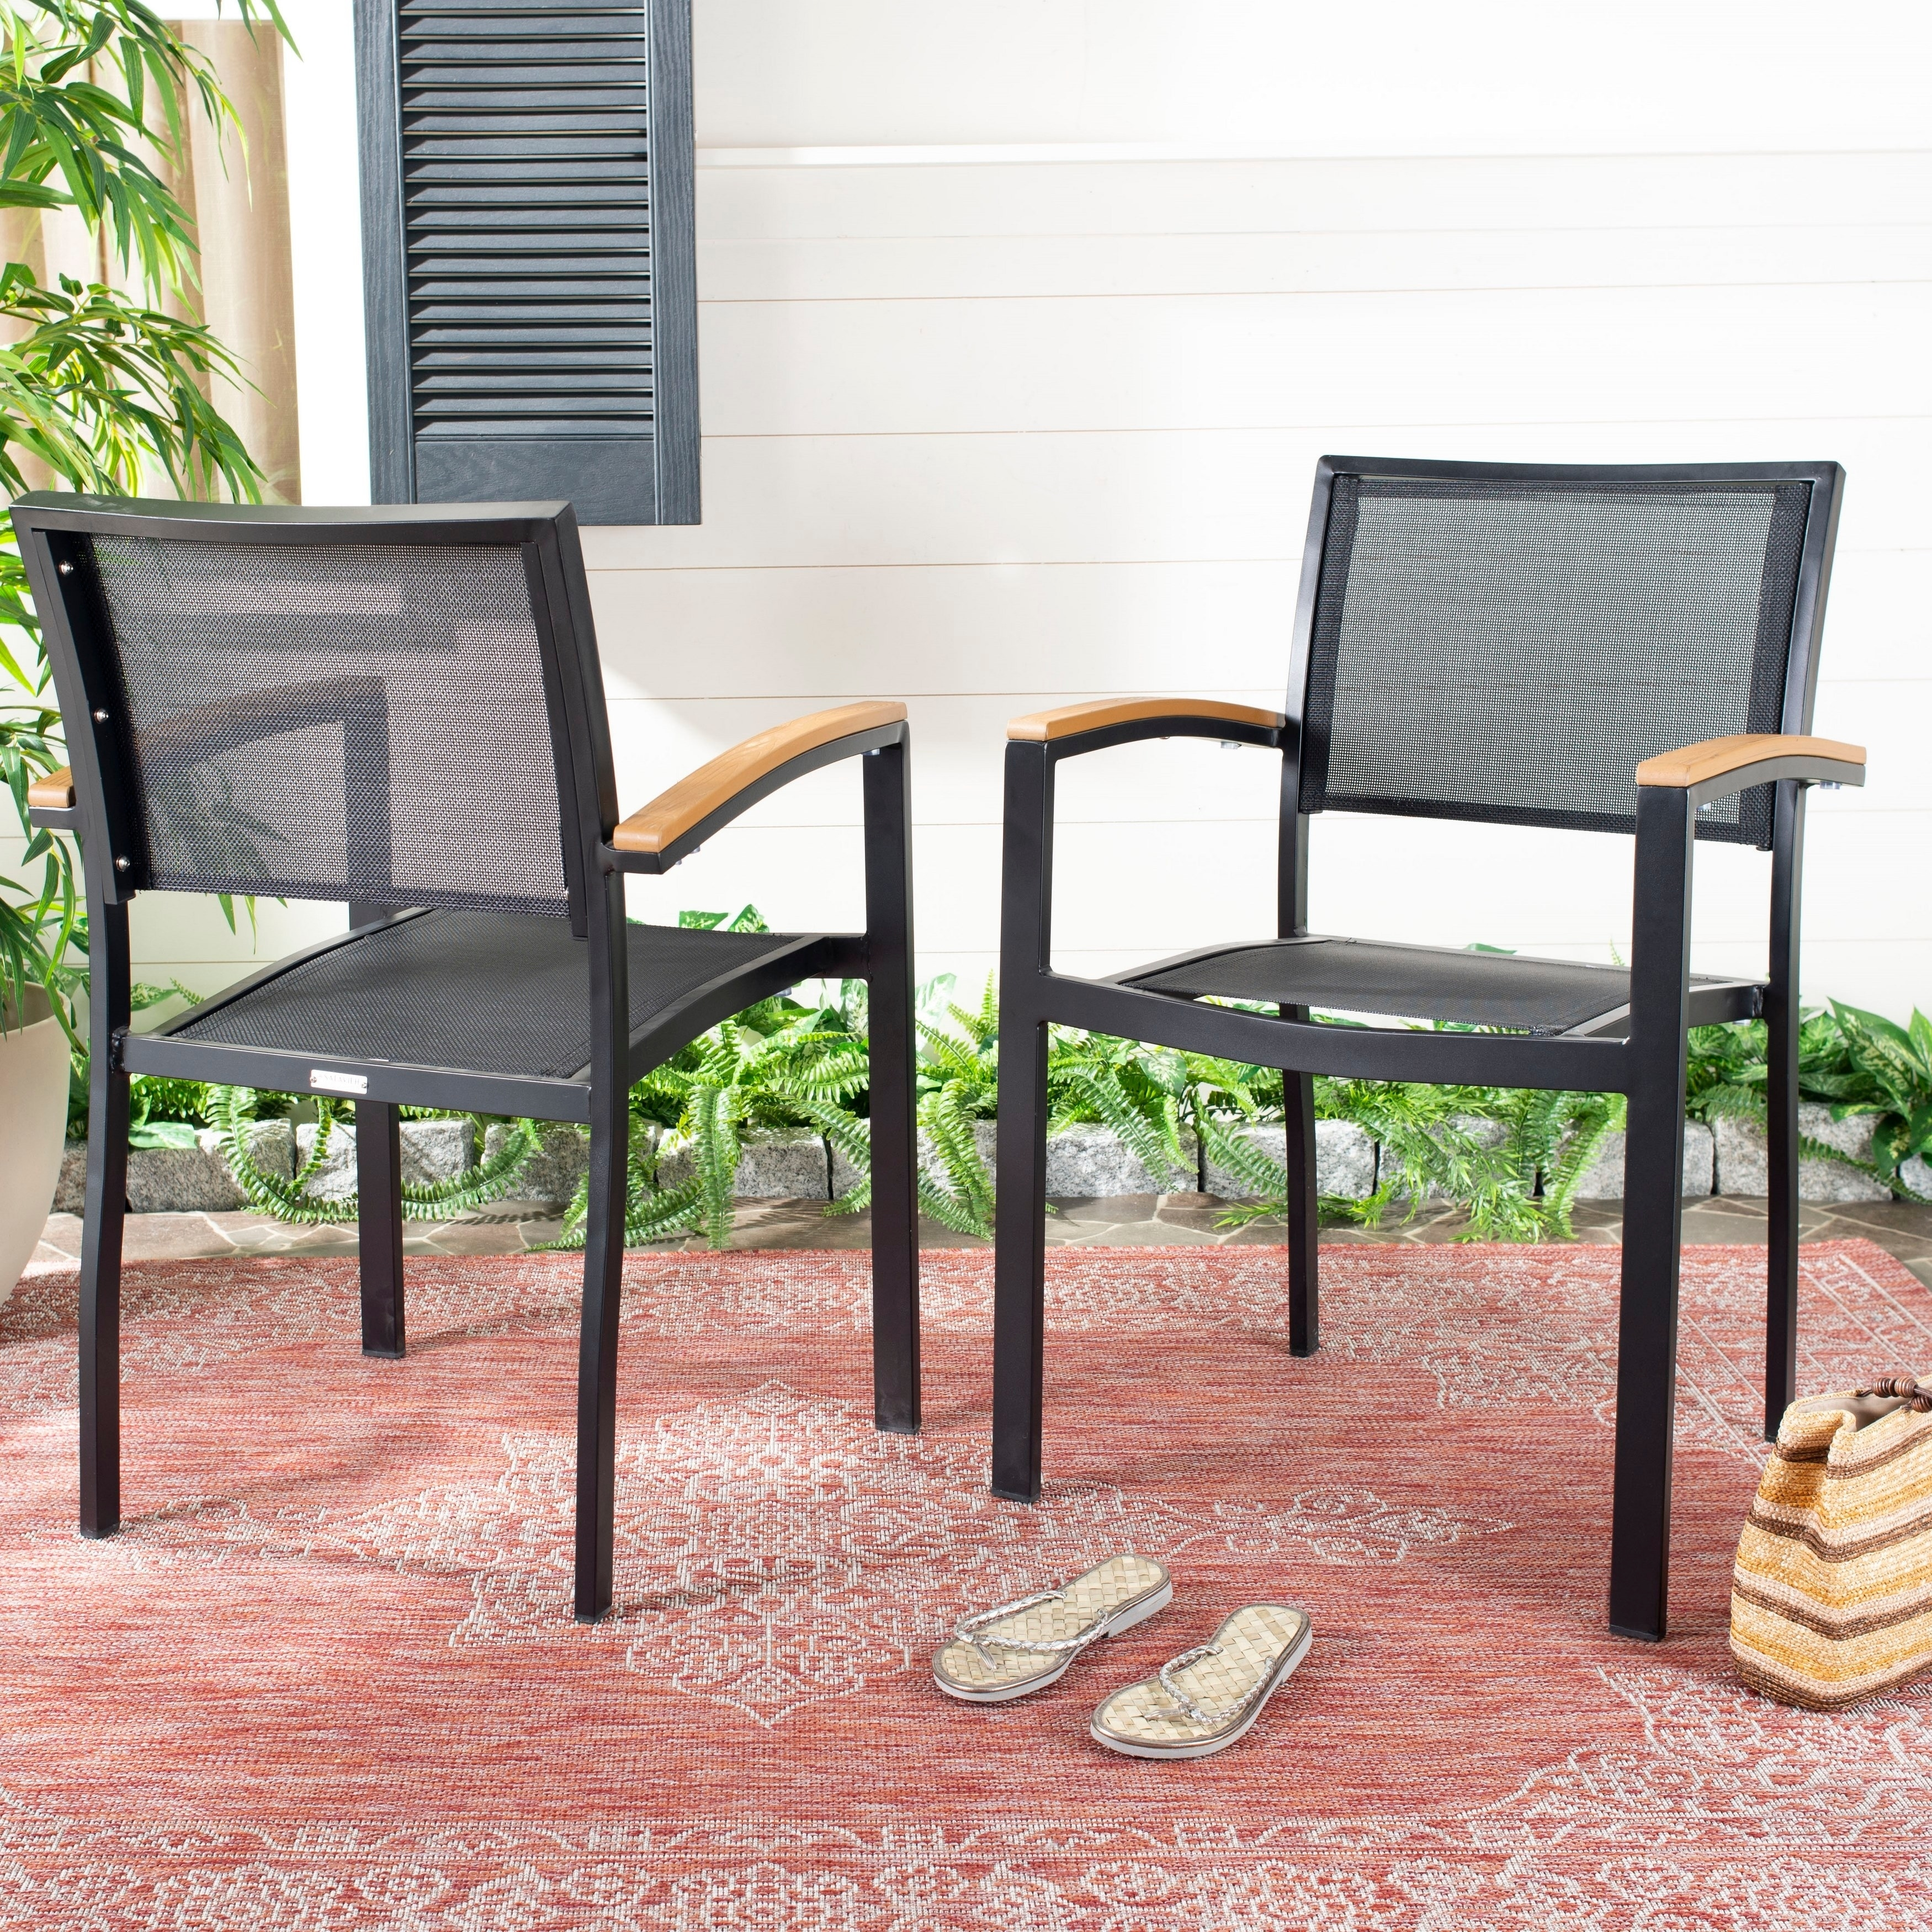 Awe Inspiring Safavieh Outdoor Living Kaelan Chair Black Brown Set Of Gmtry Best Dining Table And Chair Ideas Images Gmtryco